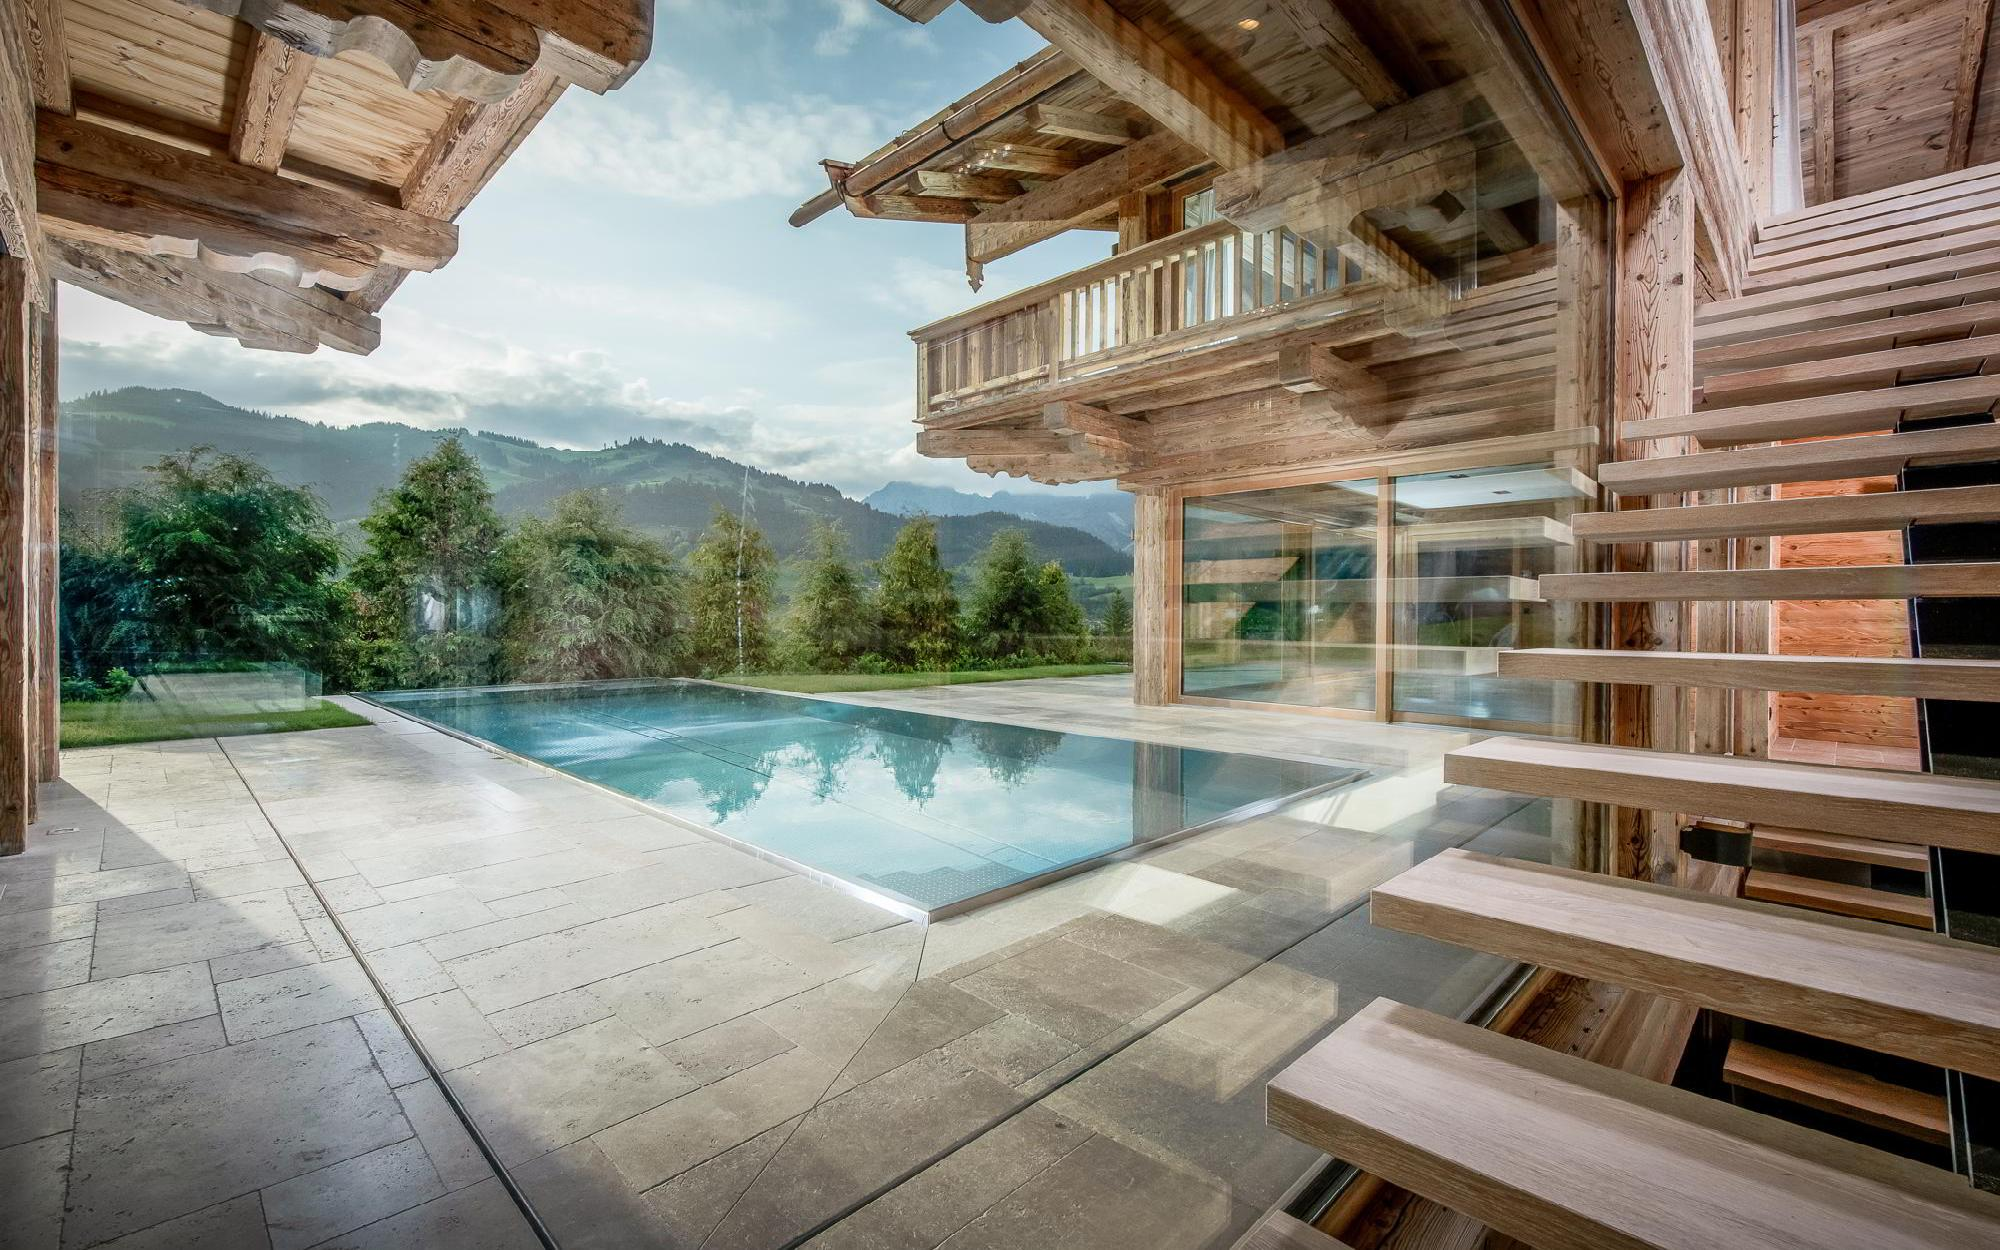 Luxury Designer Chalet in famous Alpine region - Sold - Austria - Tirol